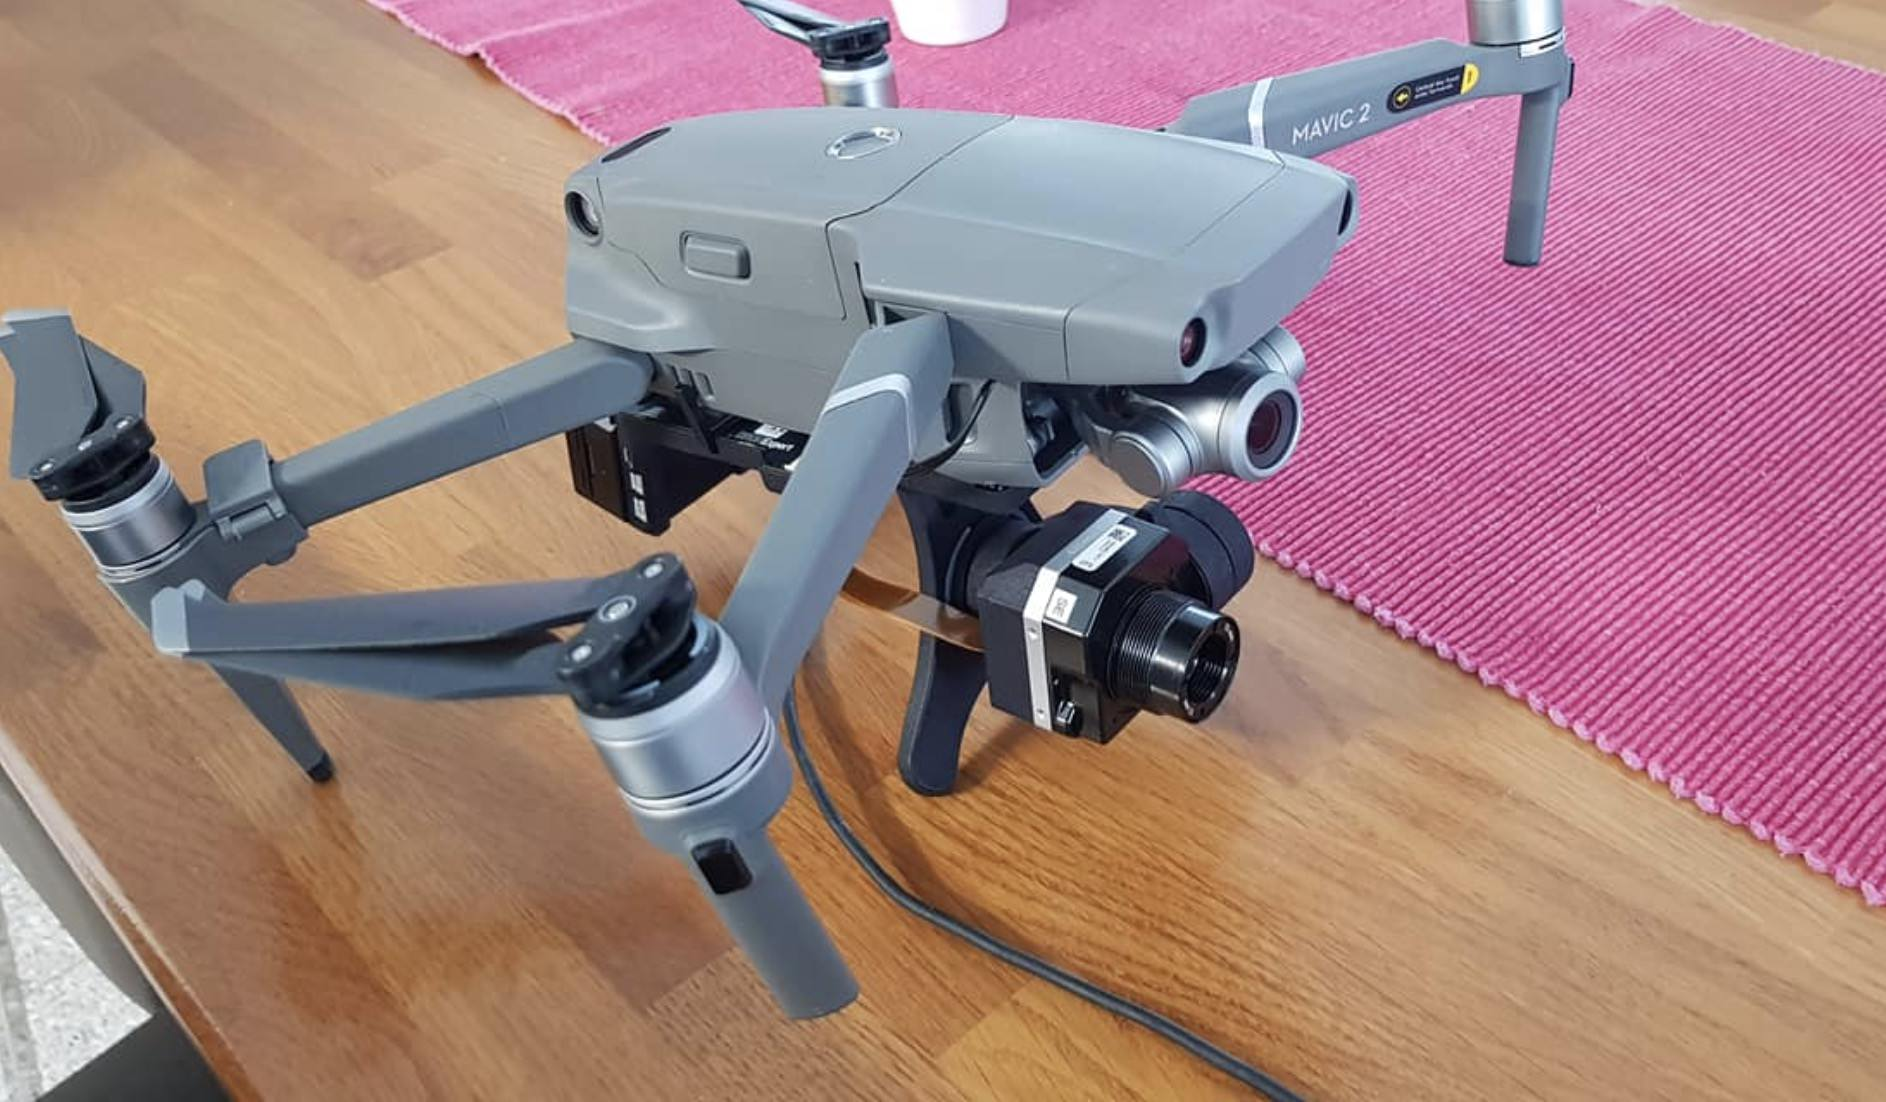 So you need a thermal drone, but you don't trust French drones